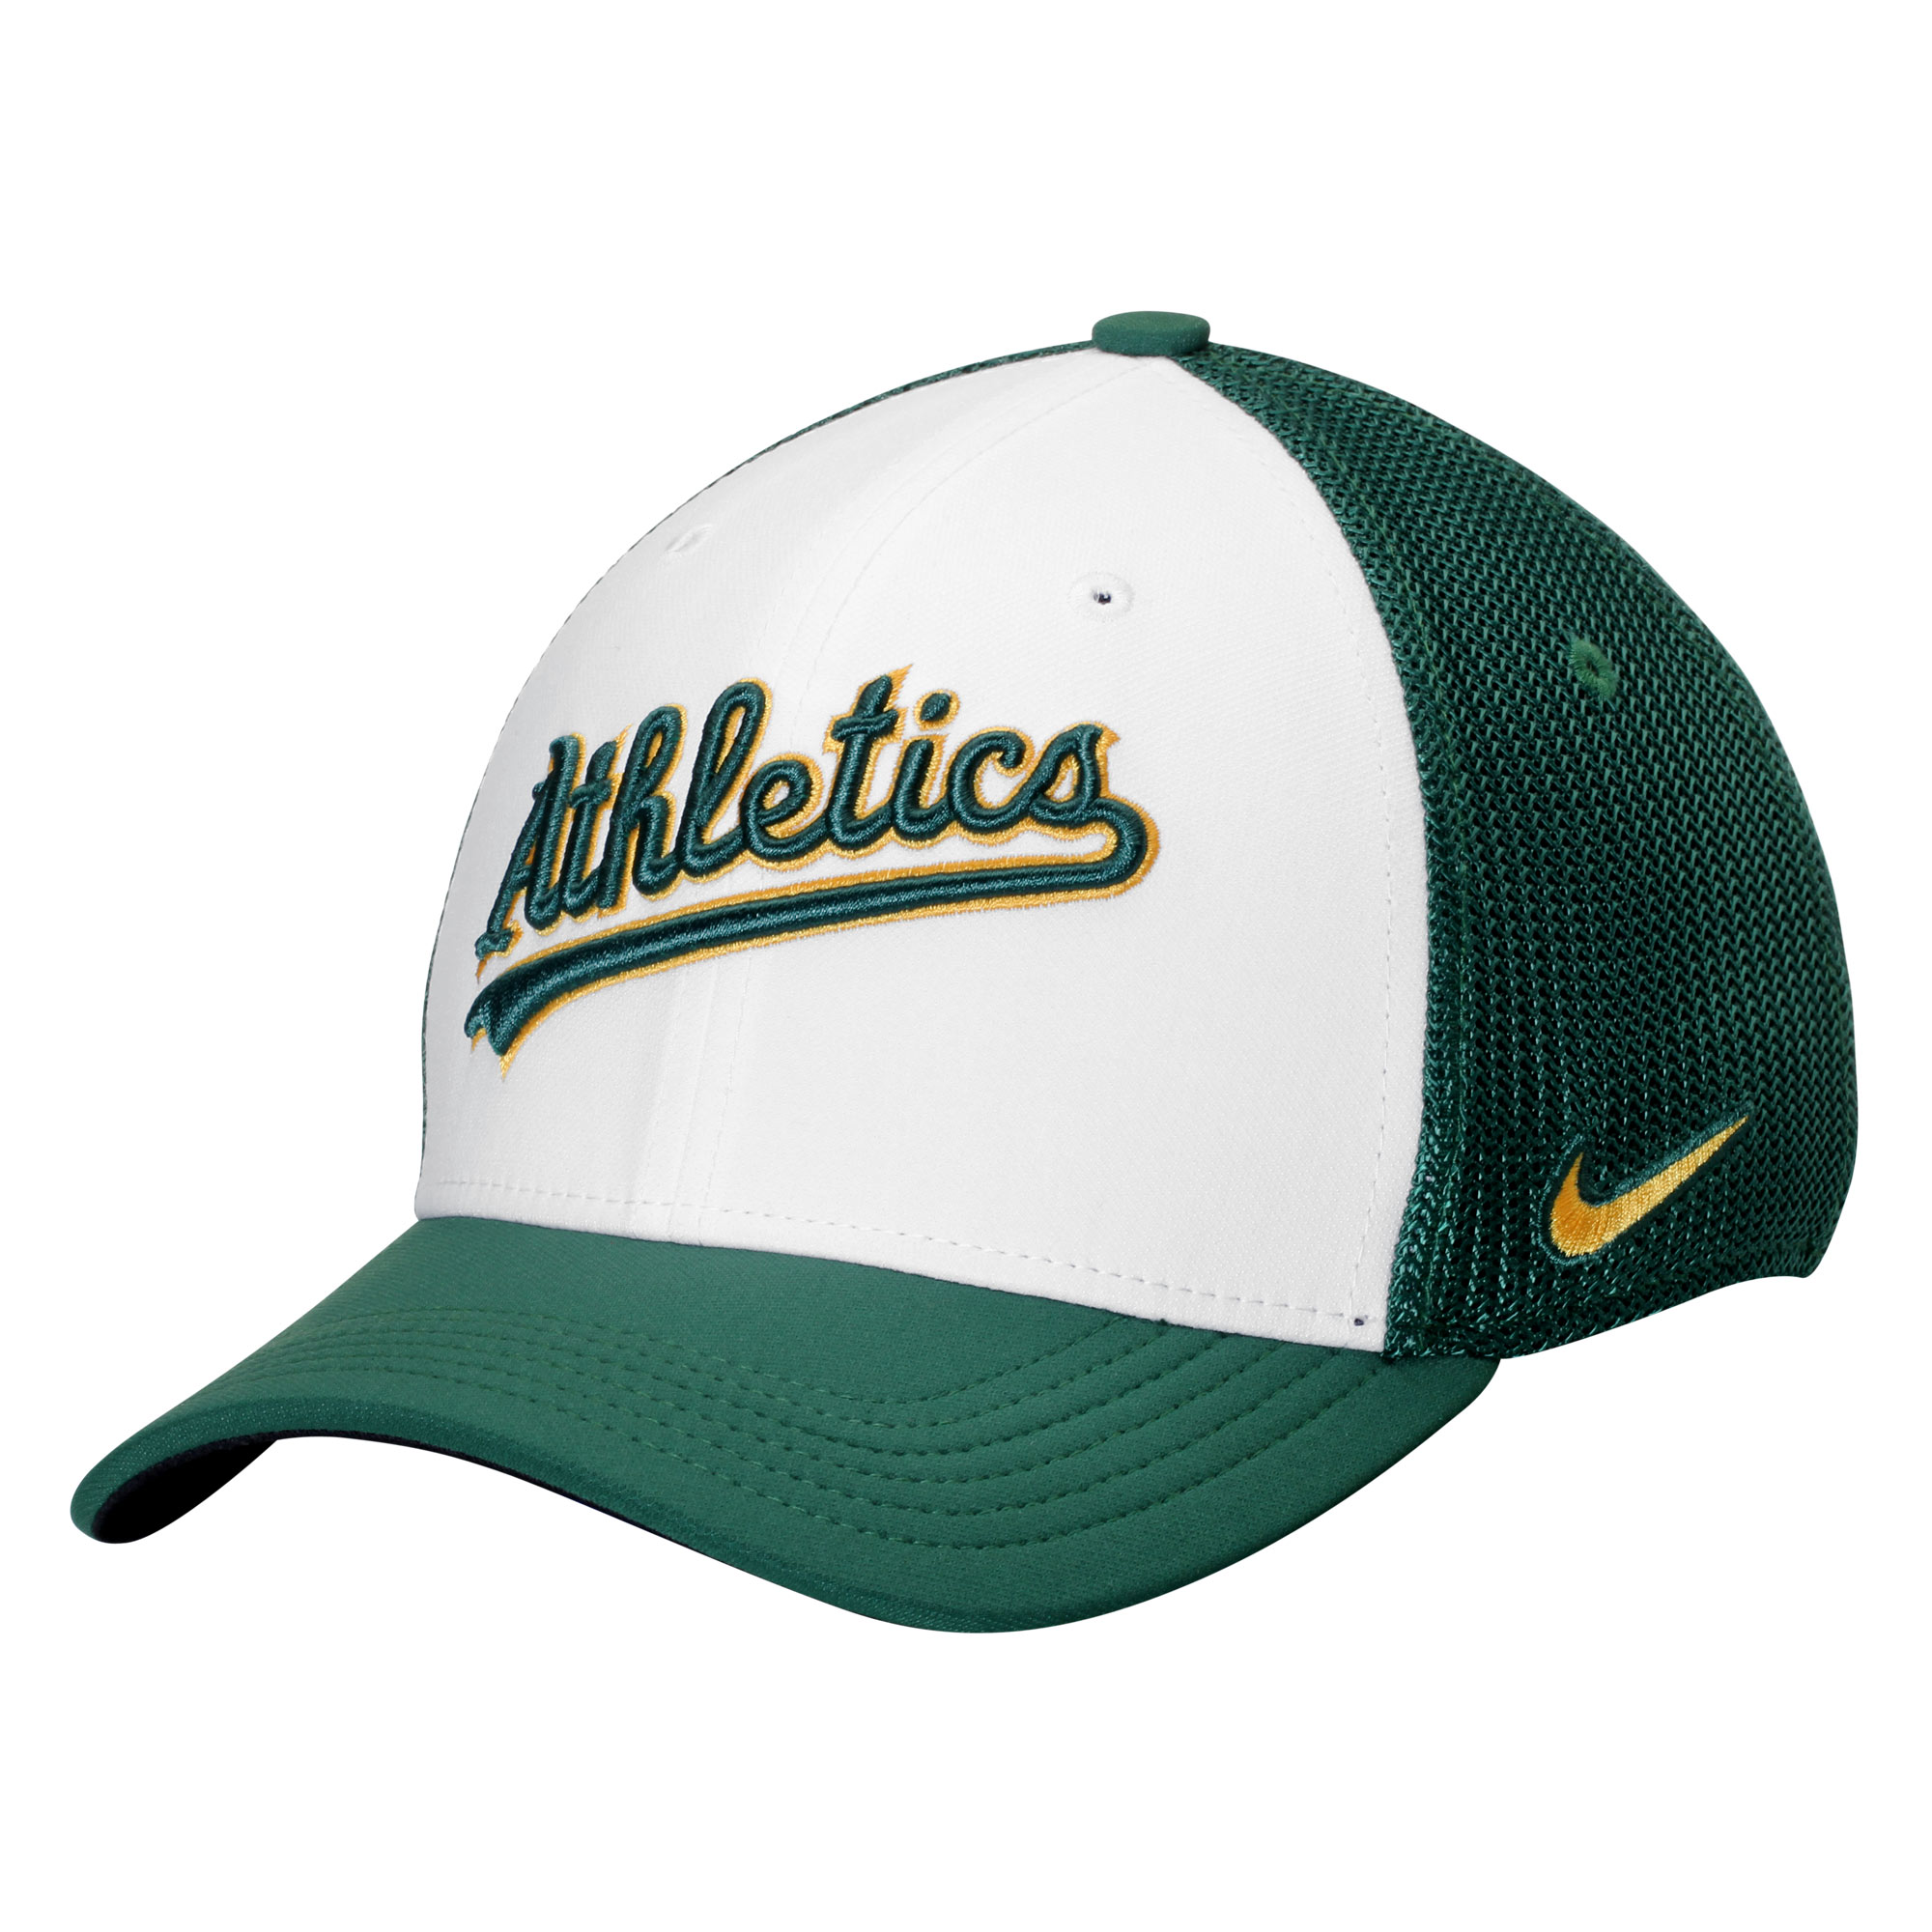 Oakland Athletics Nike Vapor Performance Swoosh Flex Hat - White/Green